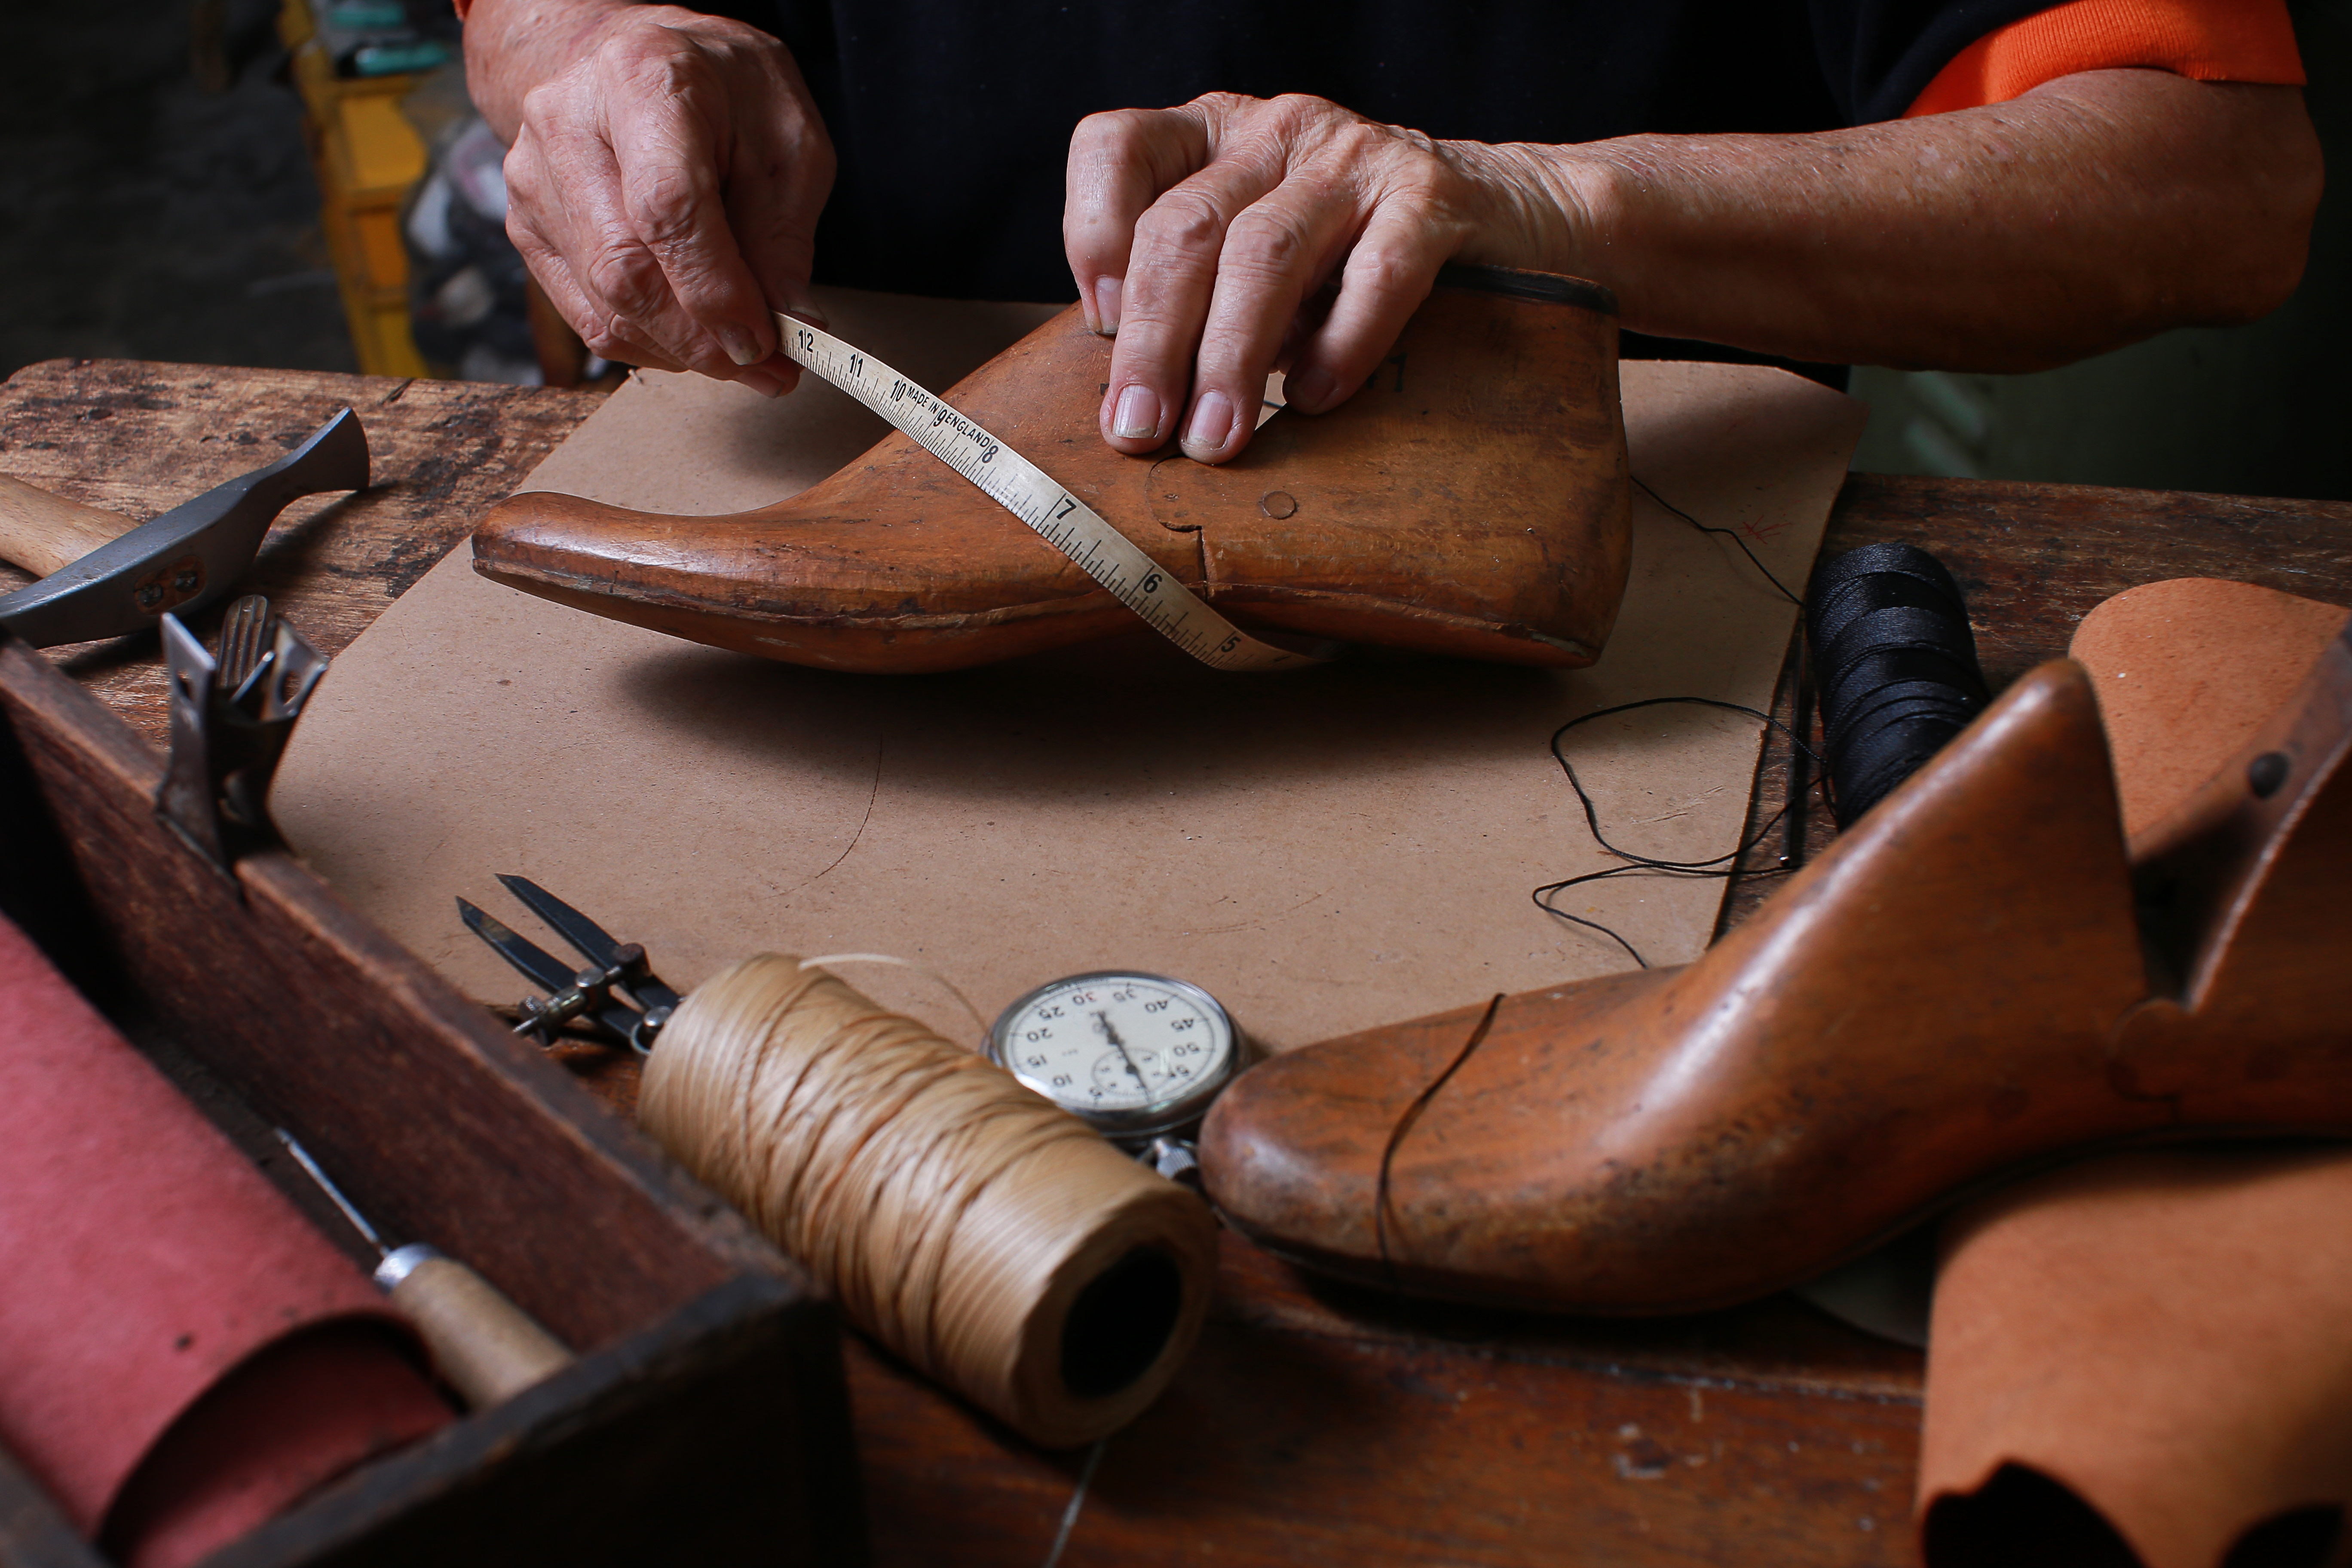 cobbler working on shoes